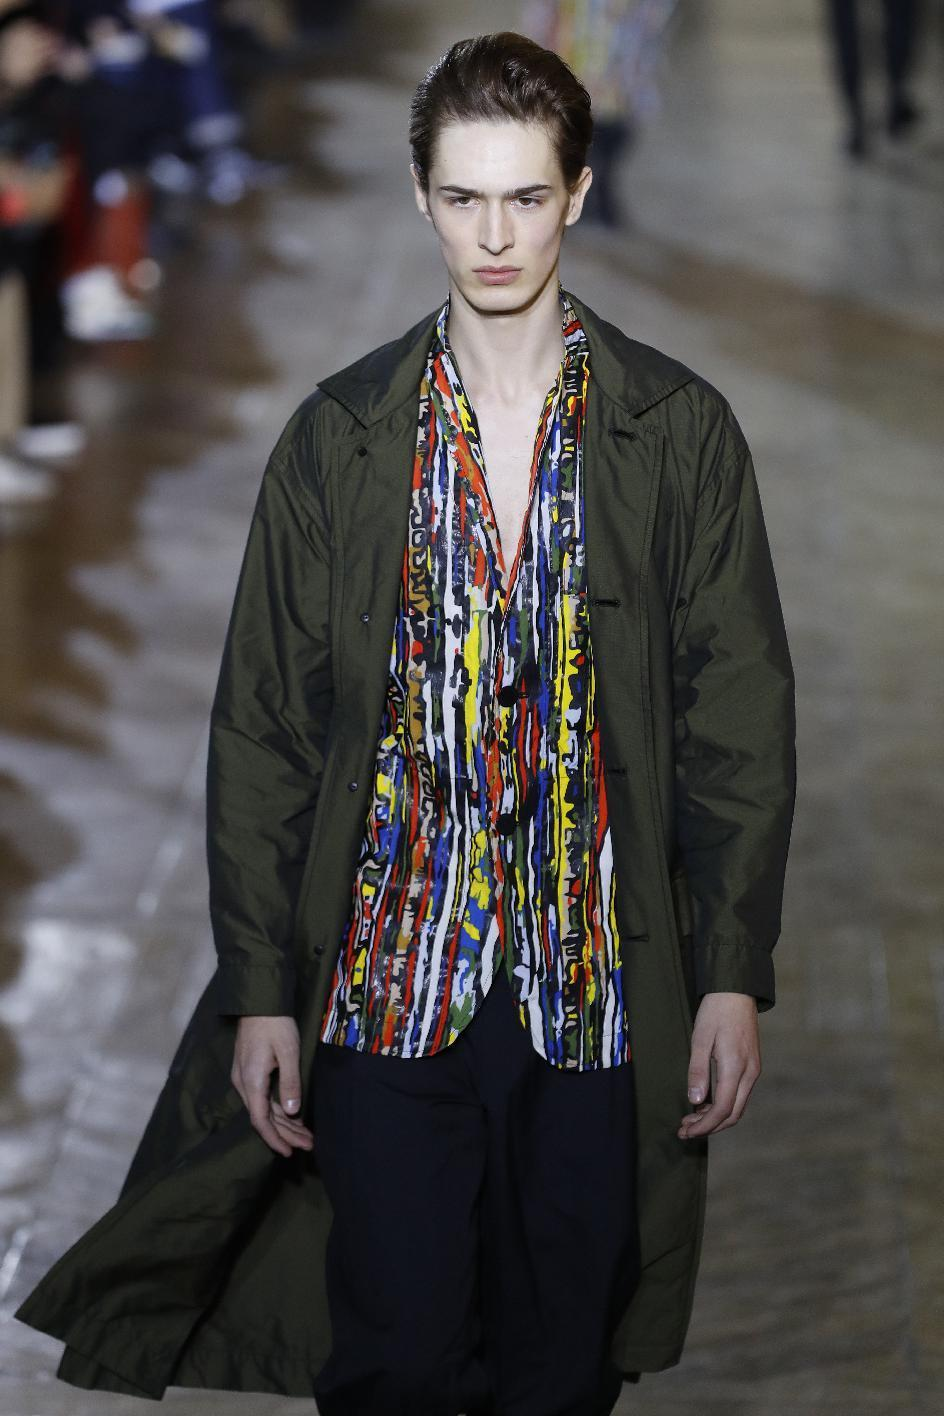 Paris fashion embraces nature and its inner country bumpkin